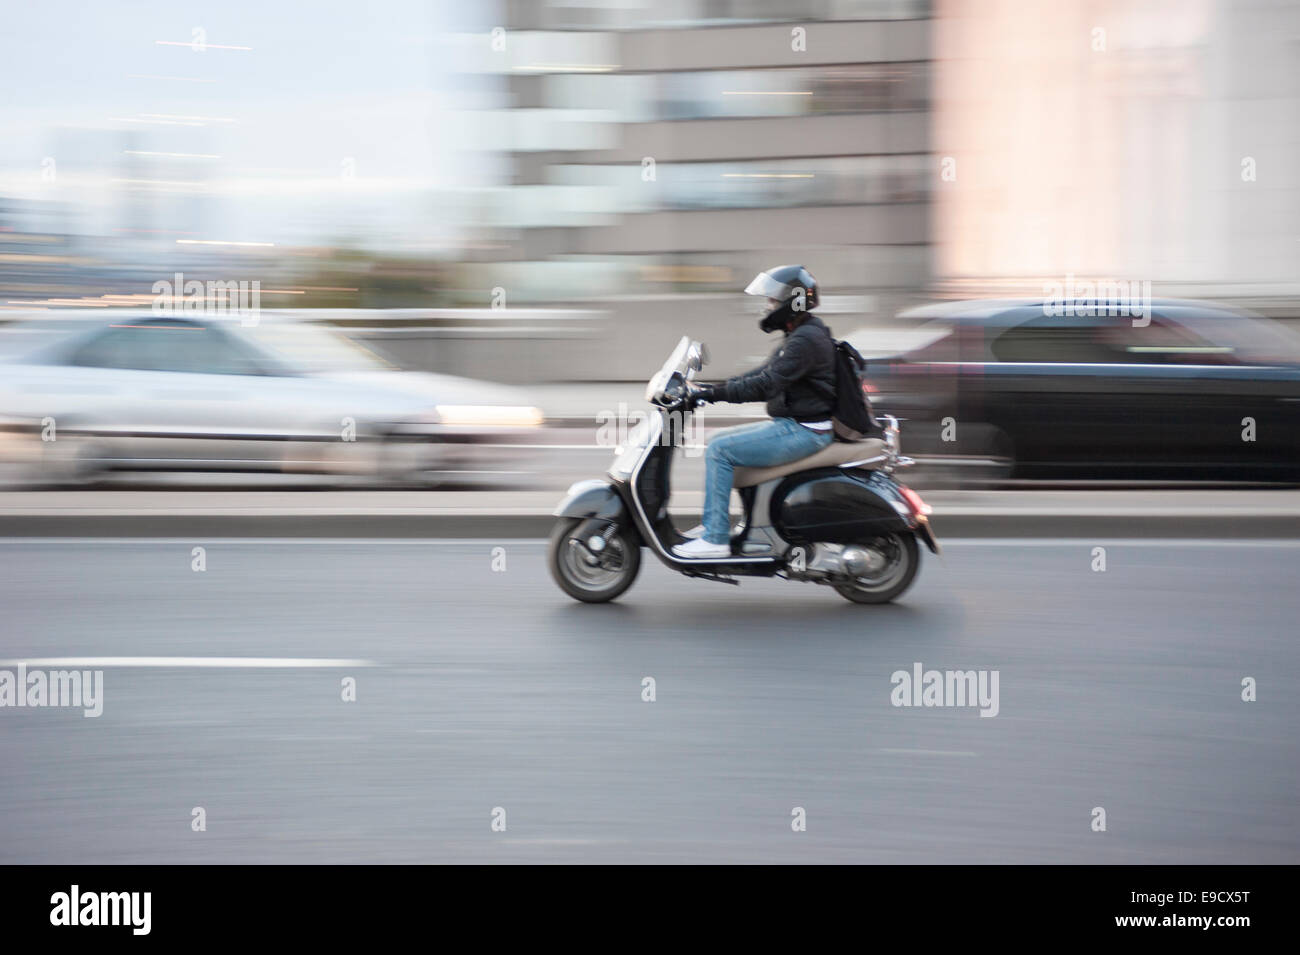 Man on a scooter with motion blur, London, UK - Stock Image